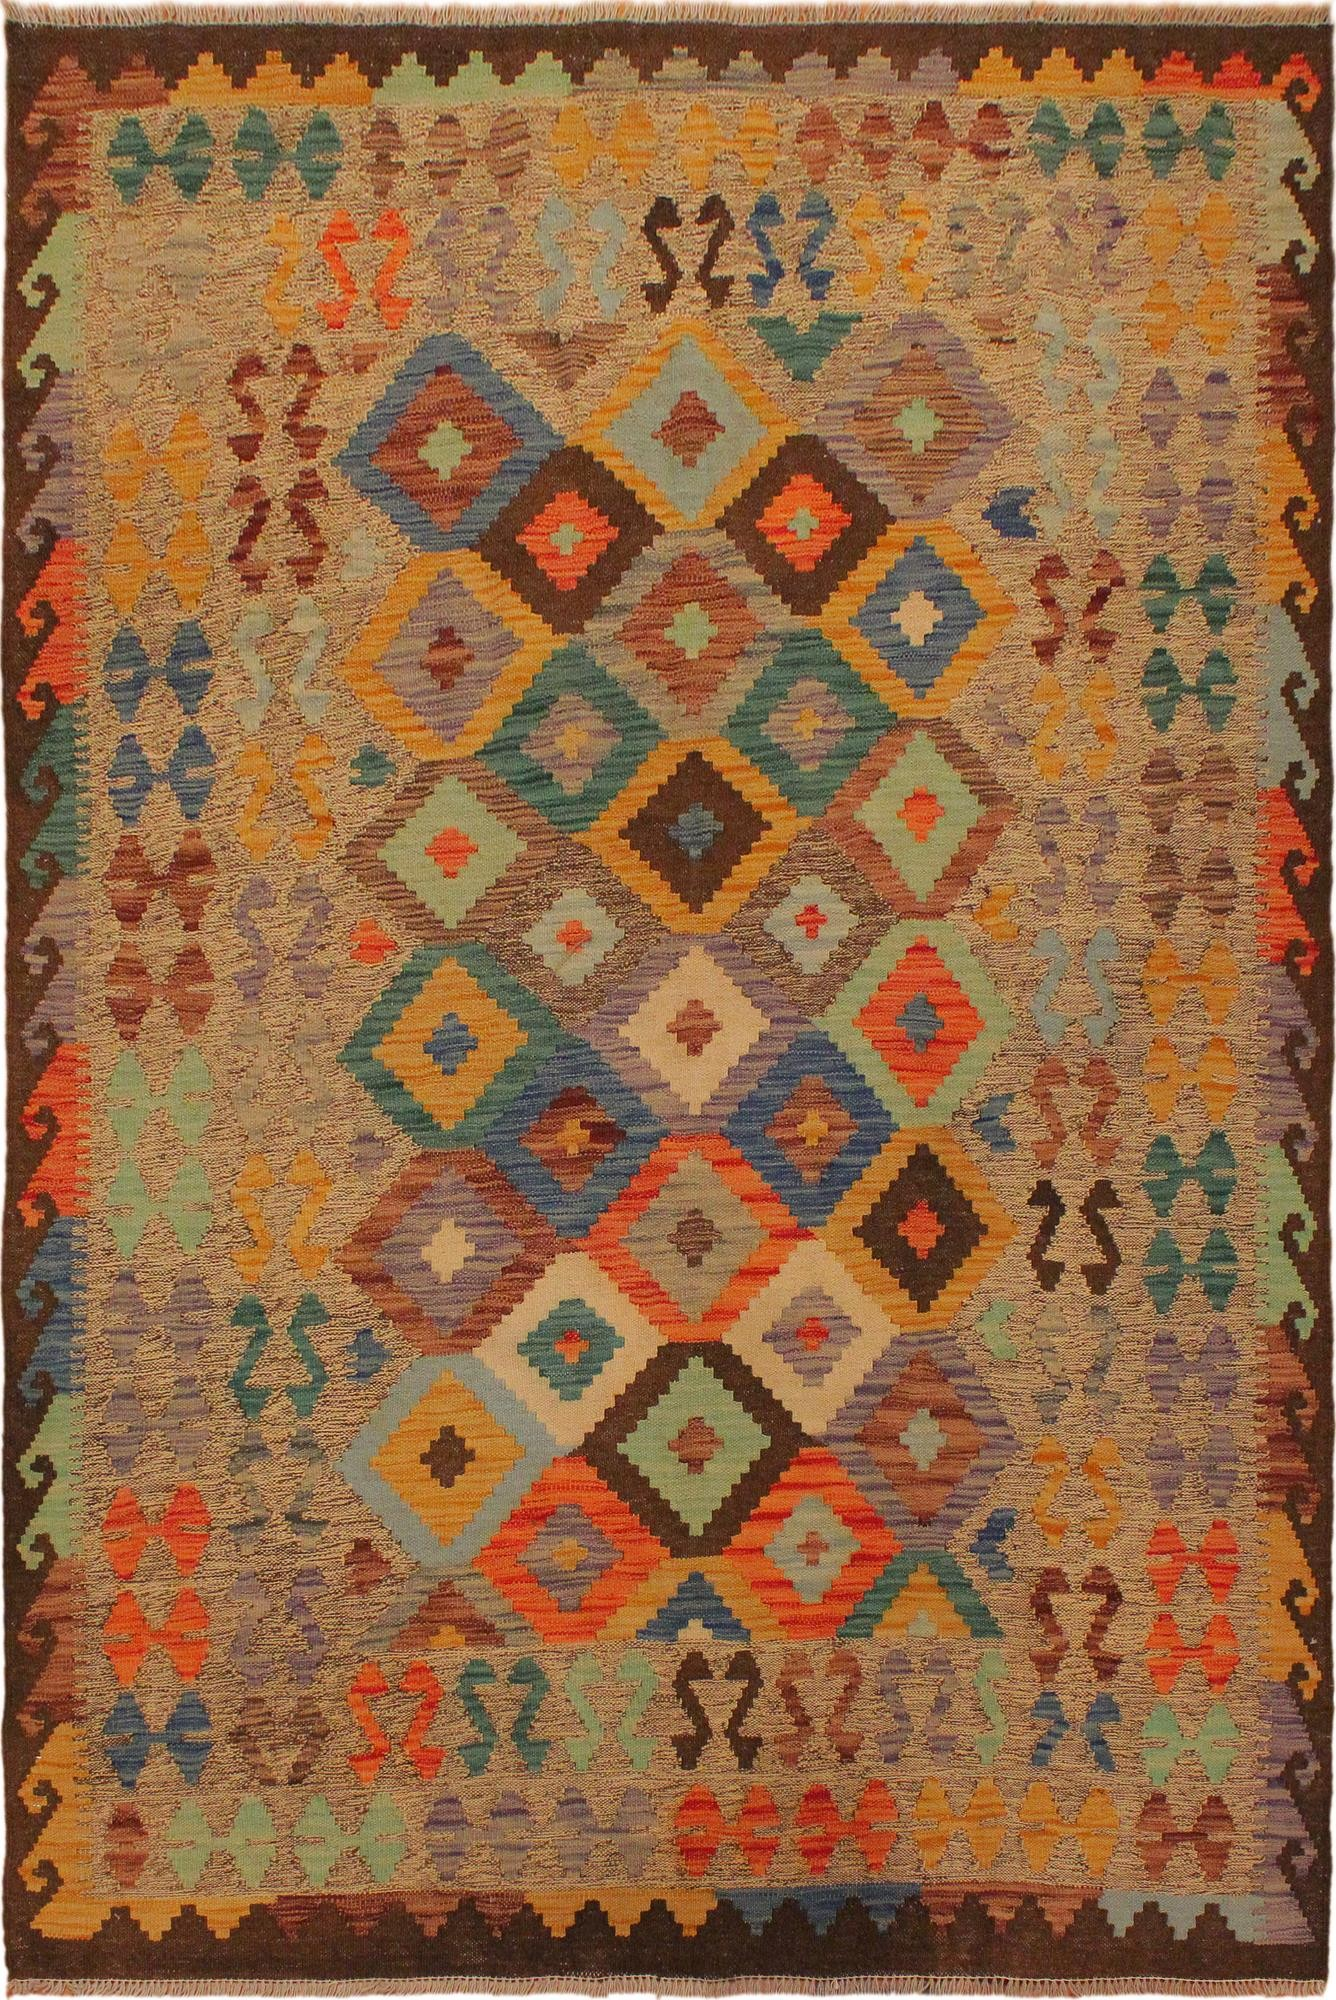 Arshs Fine Rugs Mabeline Gray/Brown Hand-Woven Wool Rug